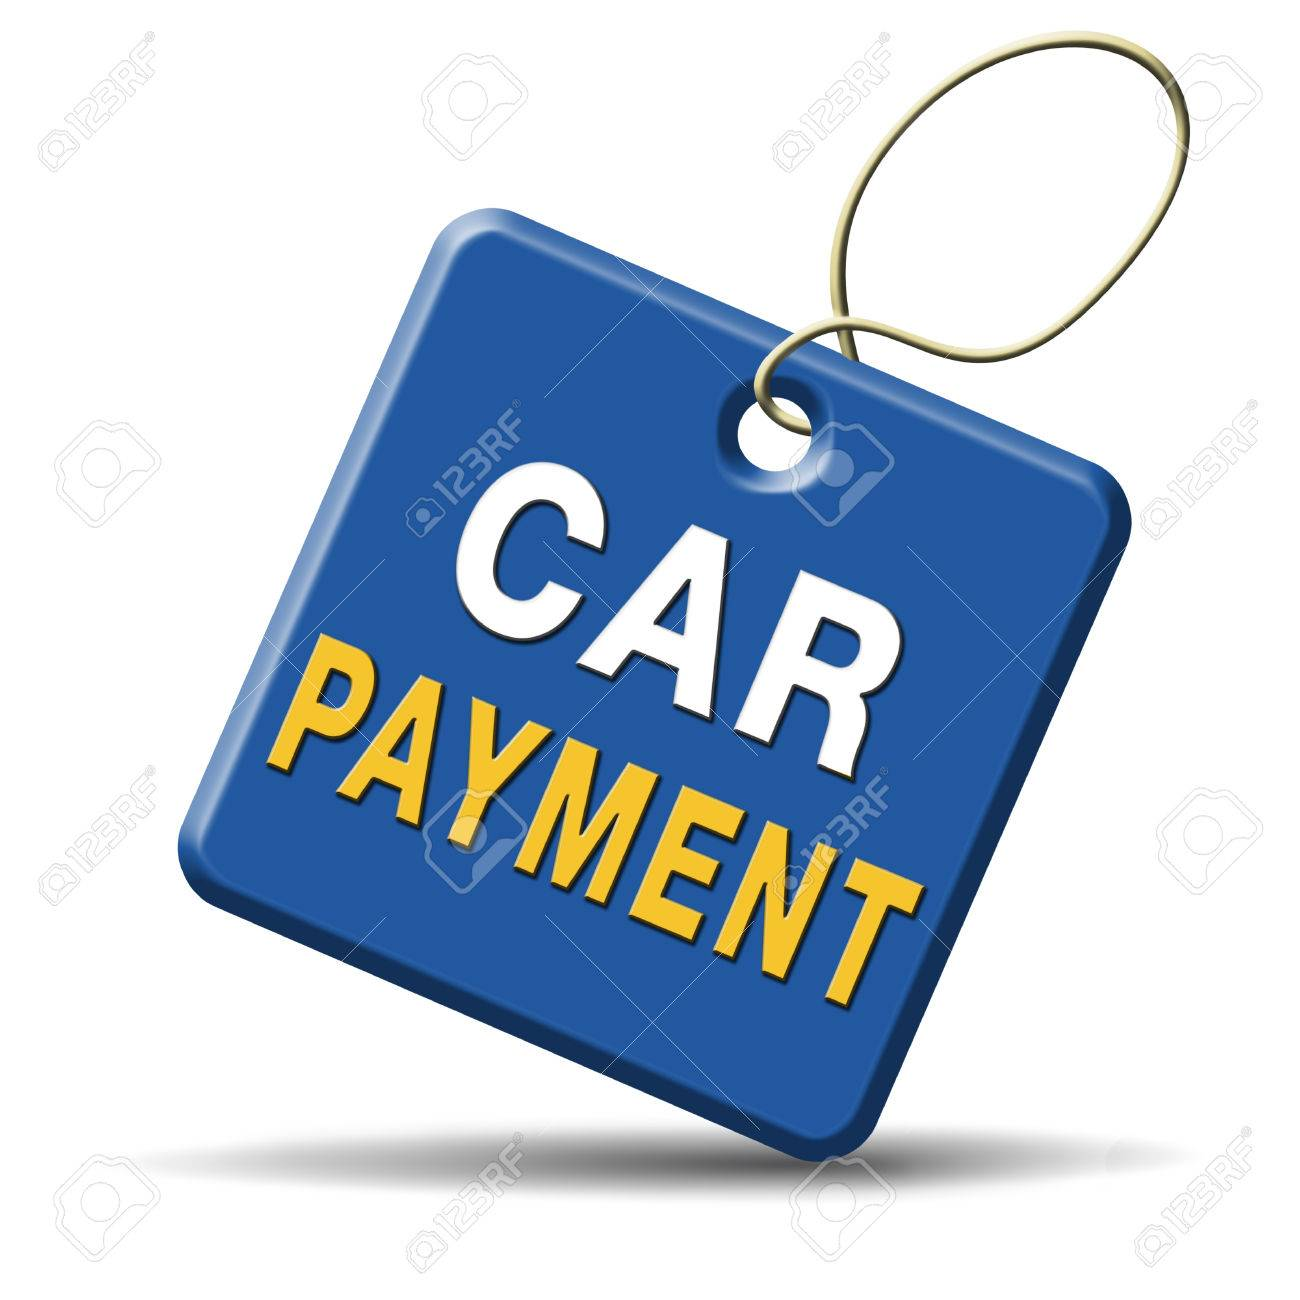 car payment or loan from bank financing for expensive first mobile buying on credit Stock Photo - 24457870